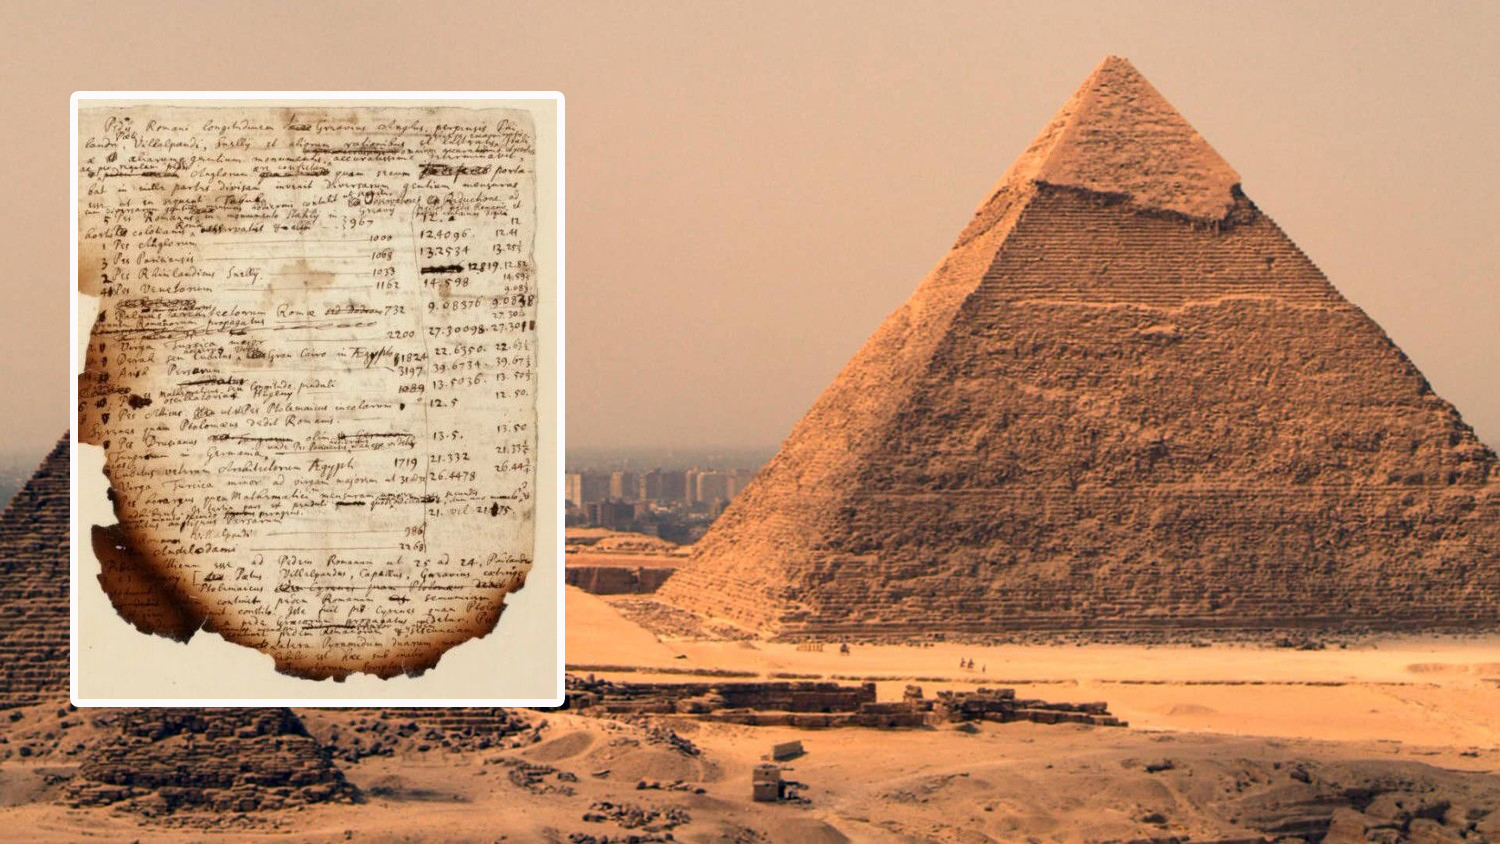 Isaac Newton tried to unravel the pyramid code to find out the end of the world